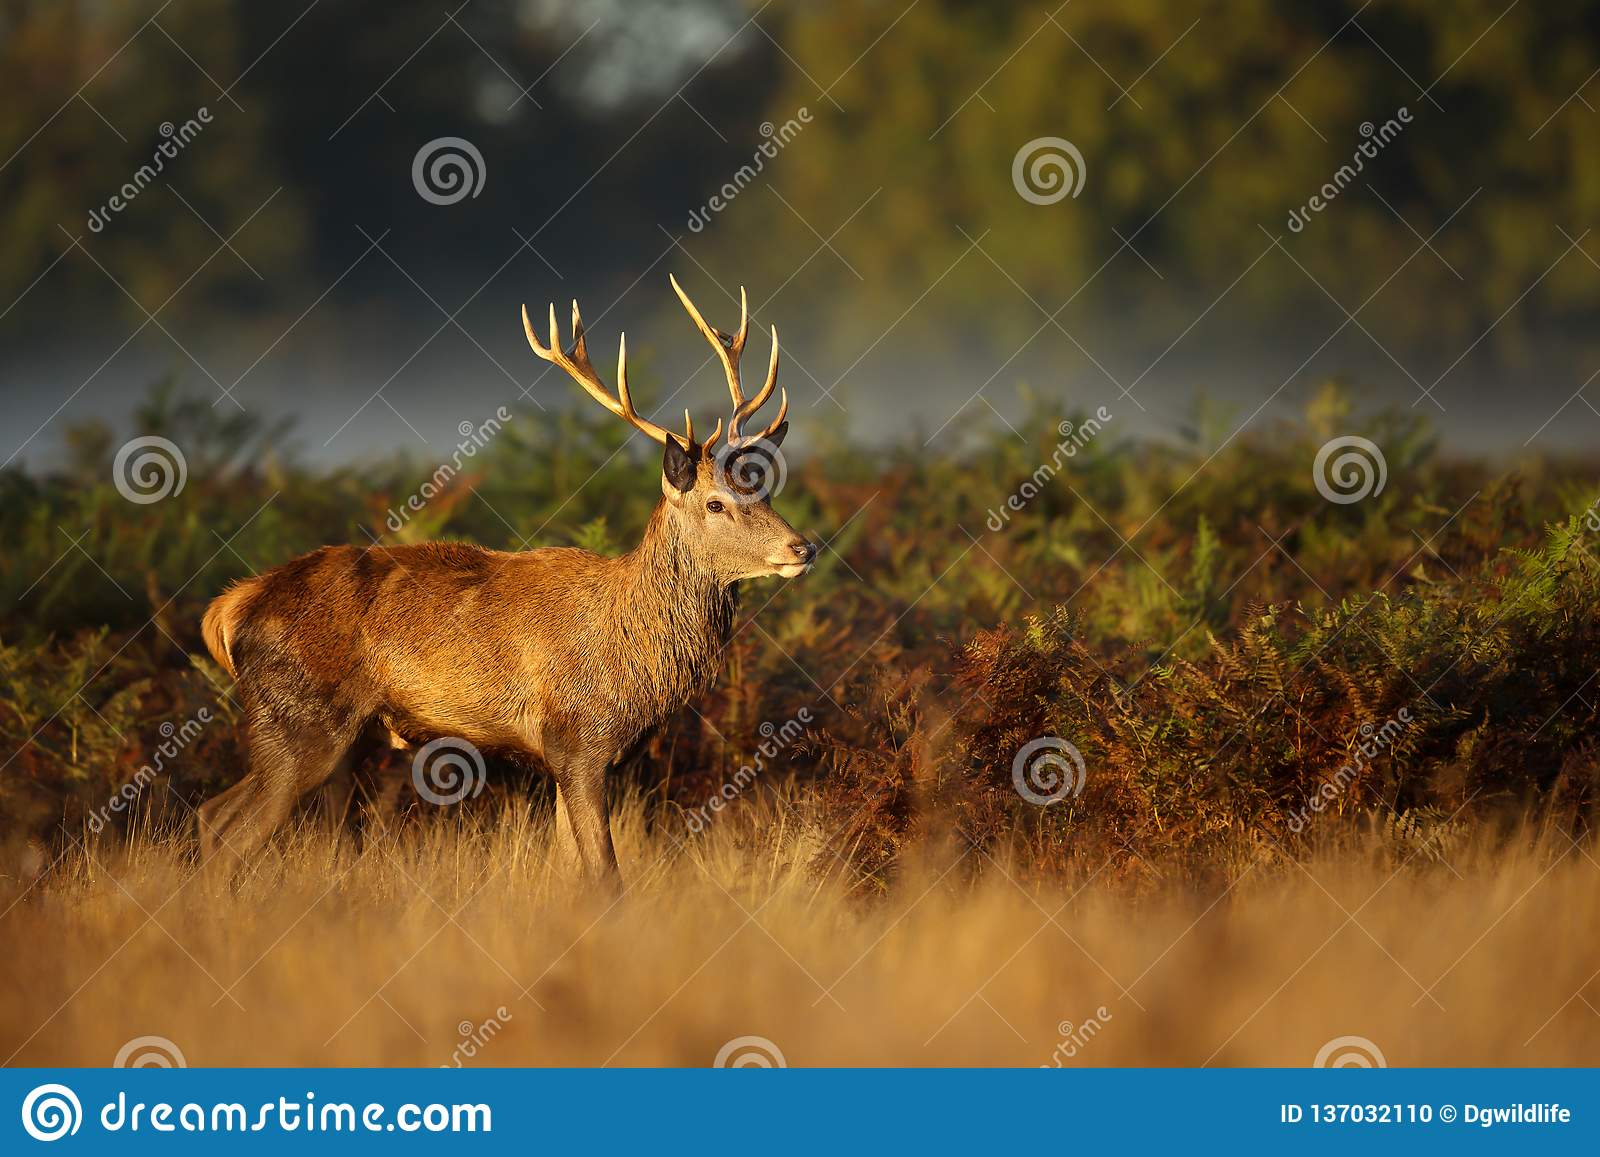 Red Deer standing in the ferns on an early misty morning